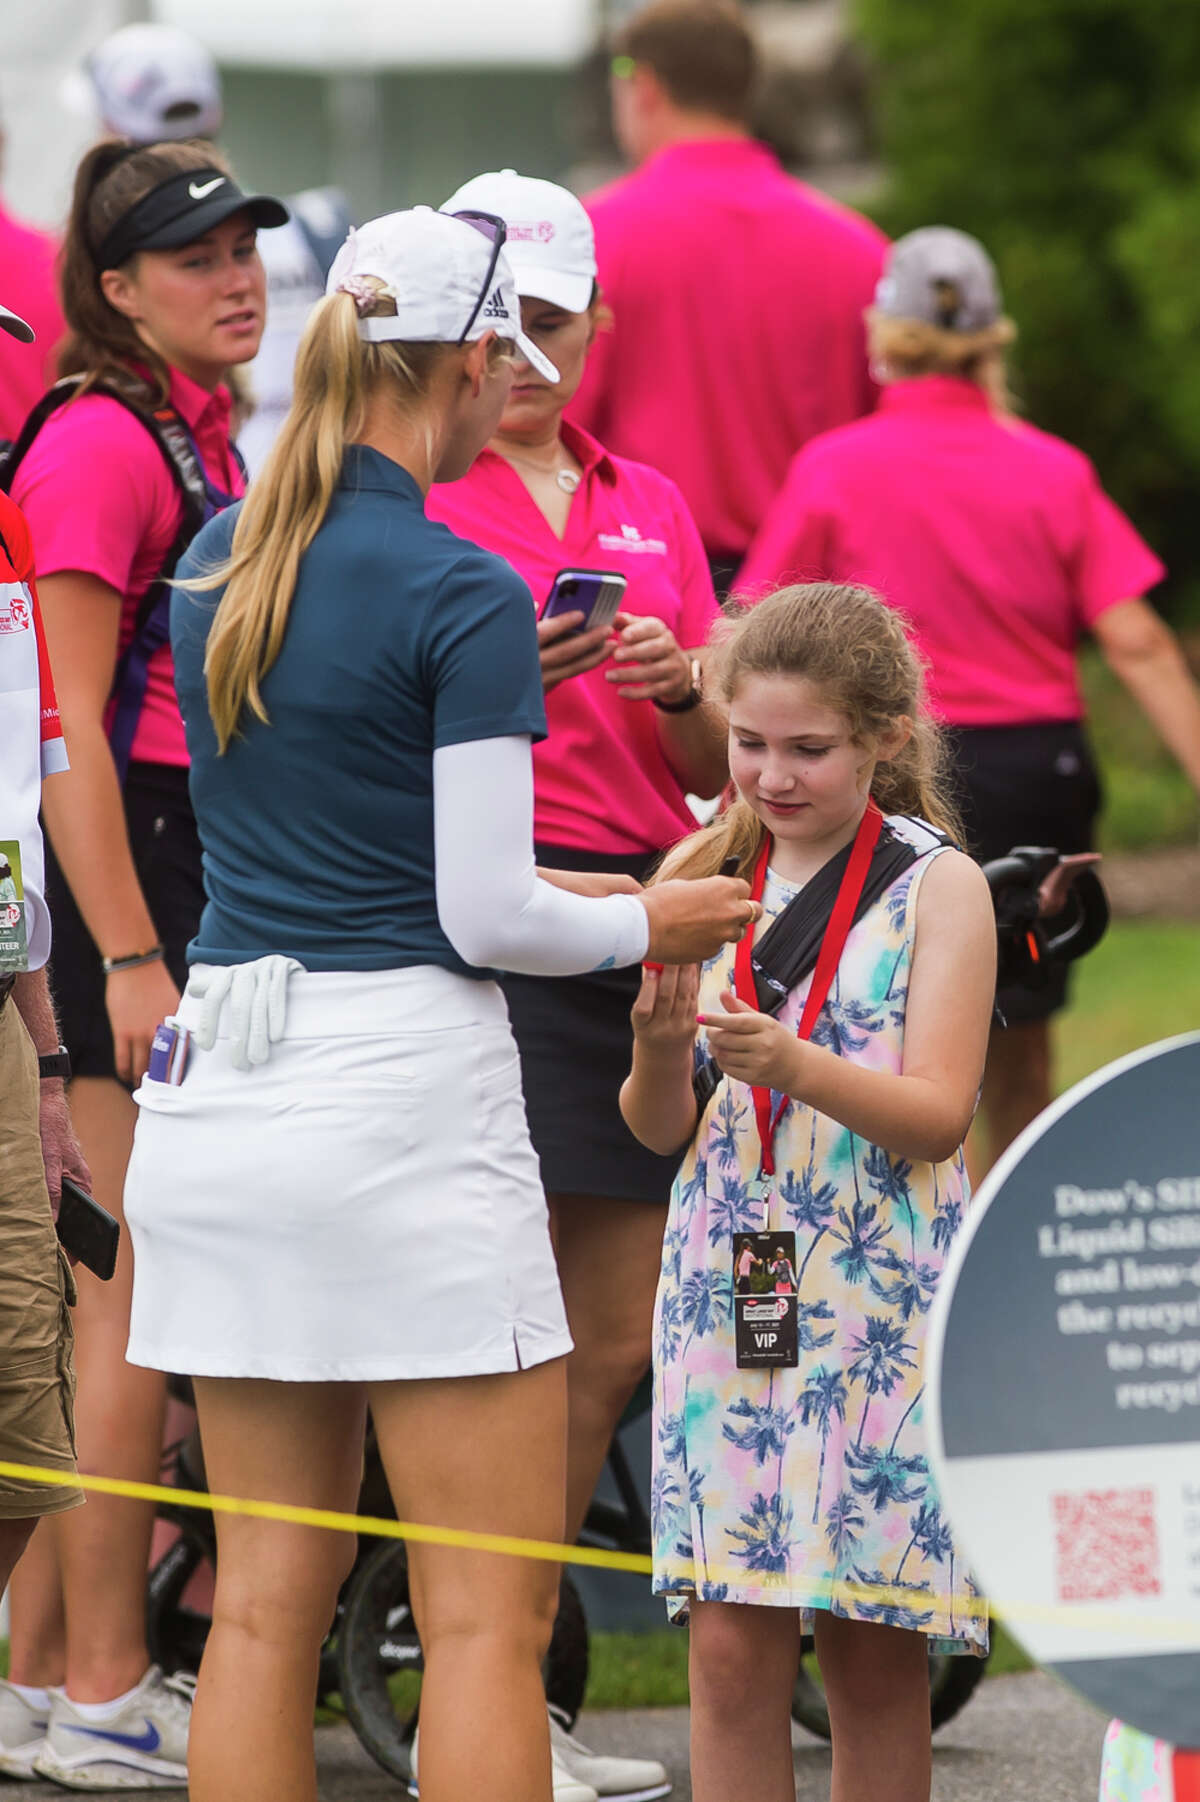 LPGA player Jessica Korda signs an autograph for a fan during the Dow Great Lakes Bay Invitational Pro Am tournament Tuesday, July 13, 2021 at the Midland Country Club. (Katy Kildee/kkildee@mdn.net)